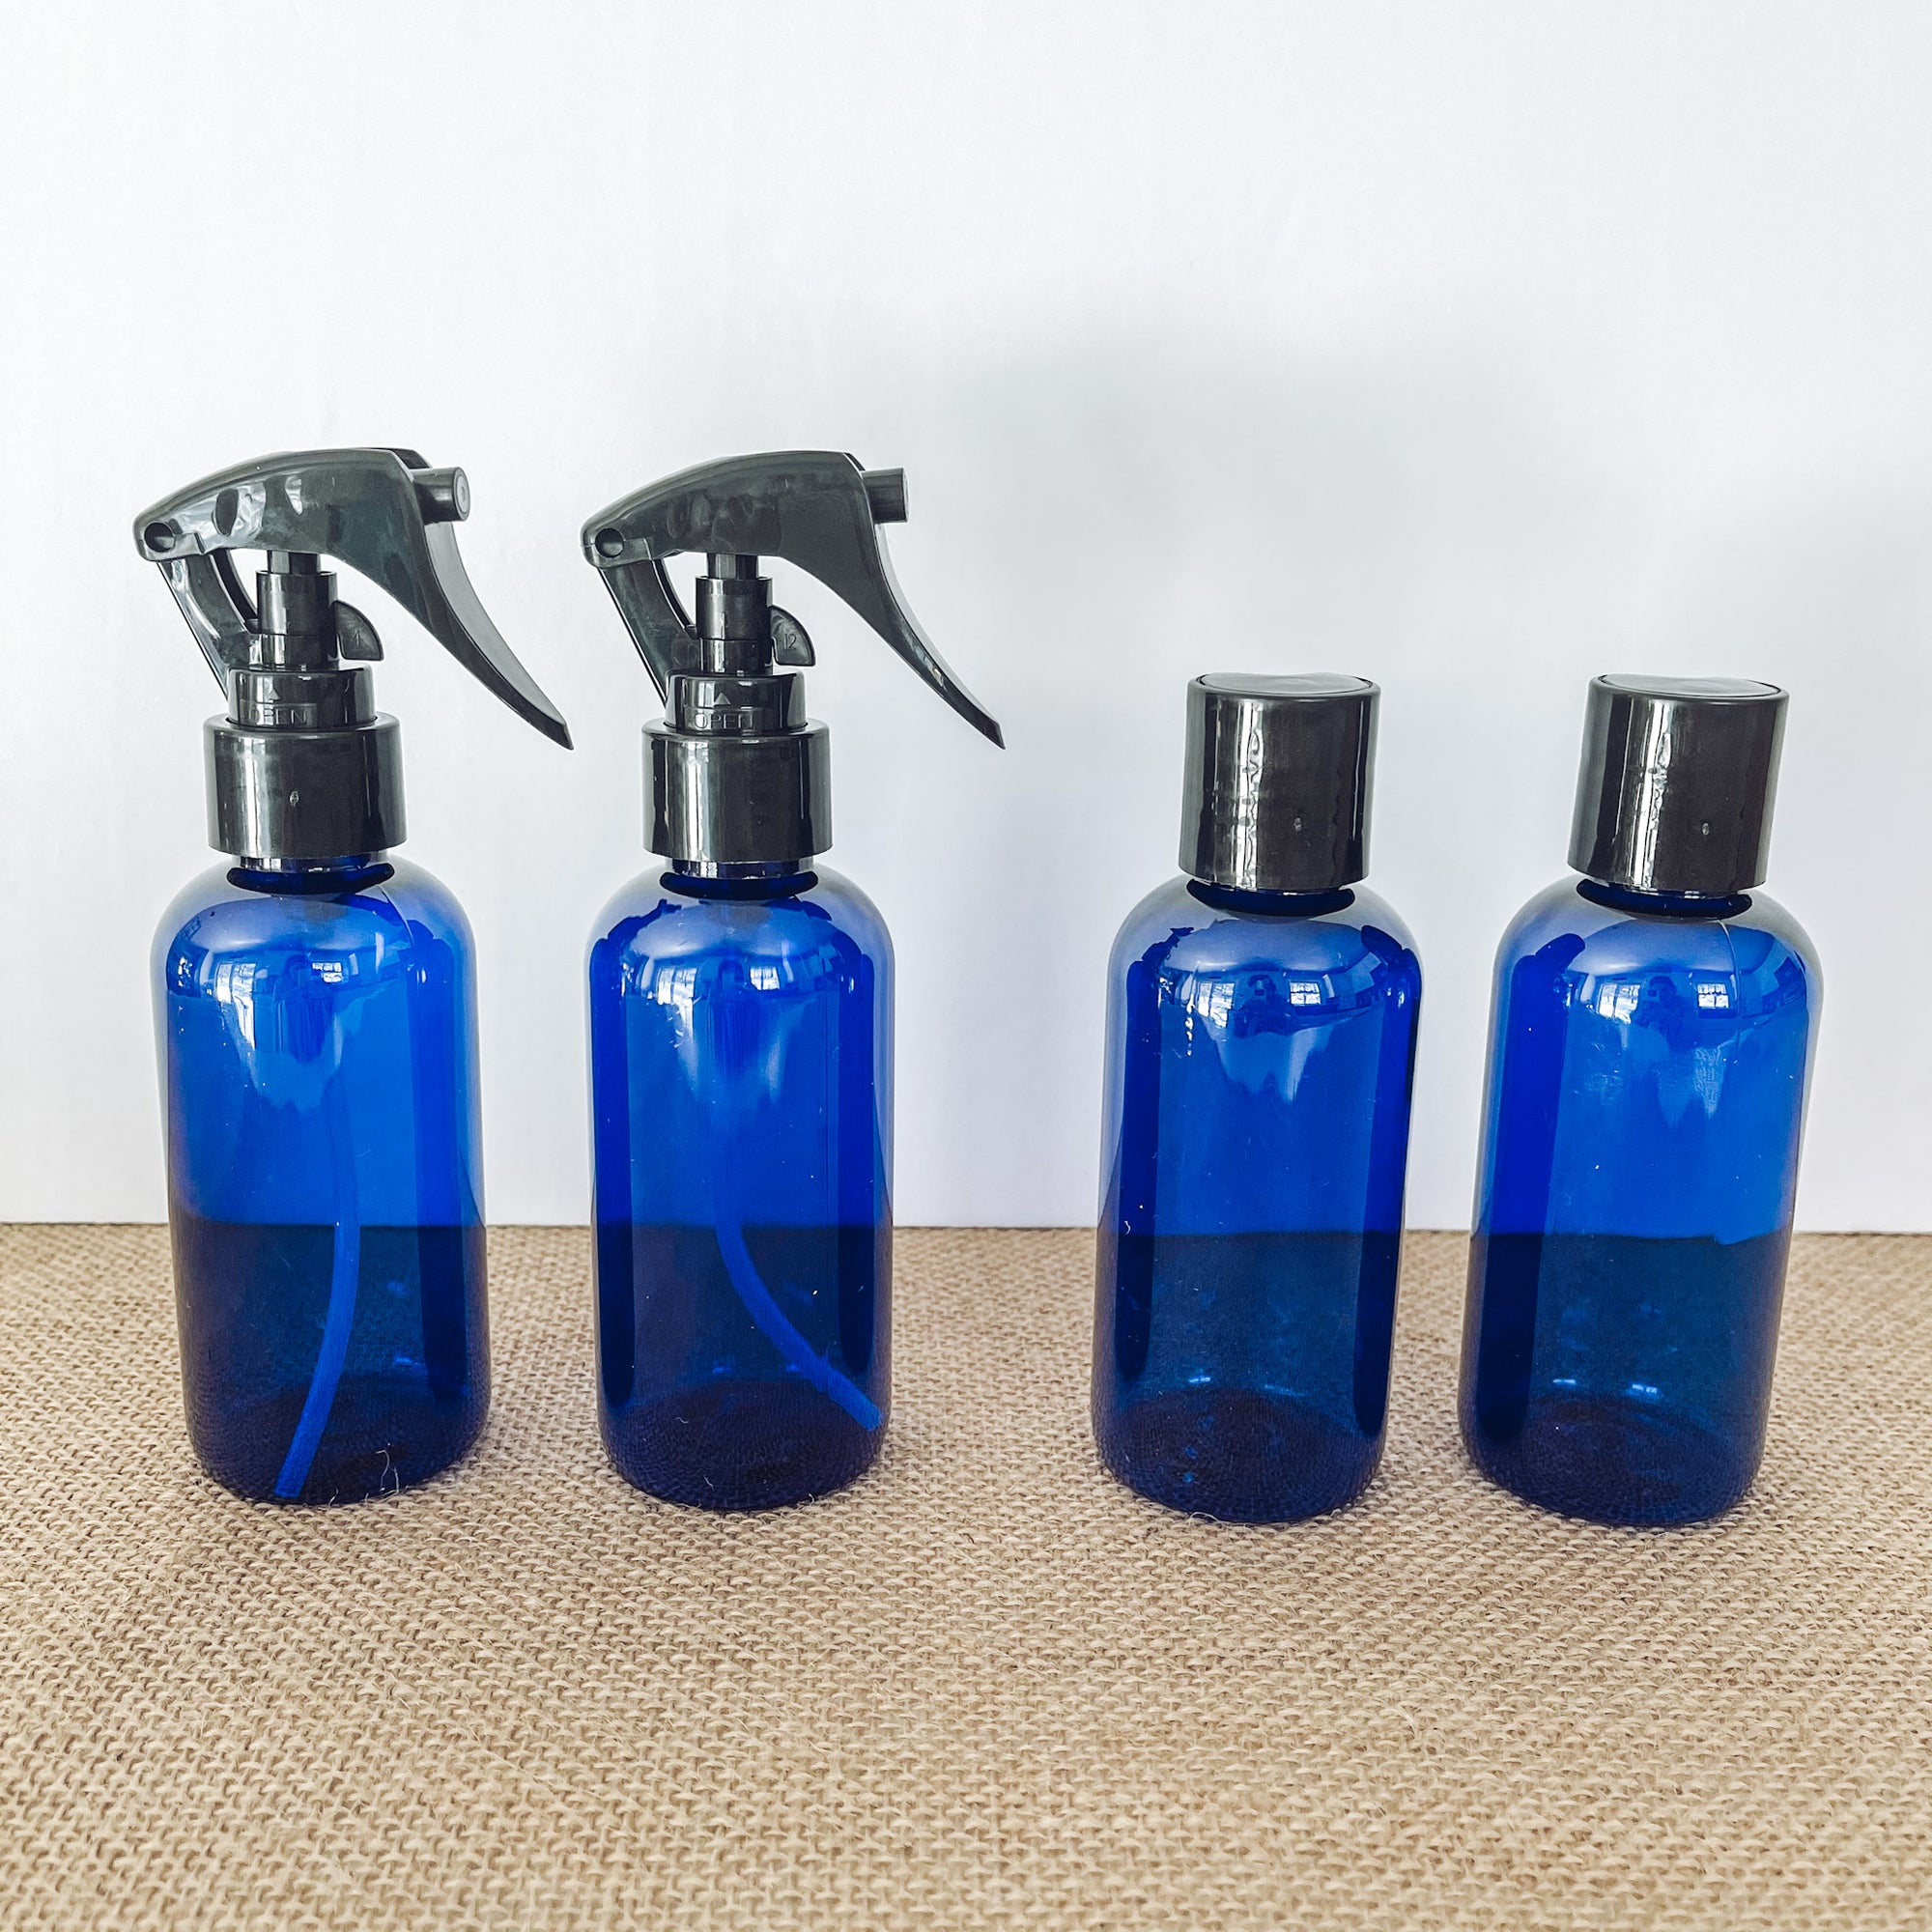 Cobalt Blue 4 oz PET Plastic Bottles (BPA Free) w Black Closures (4 pc)